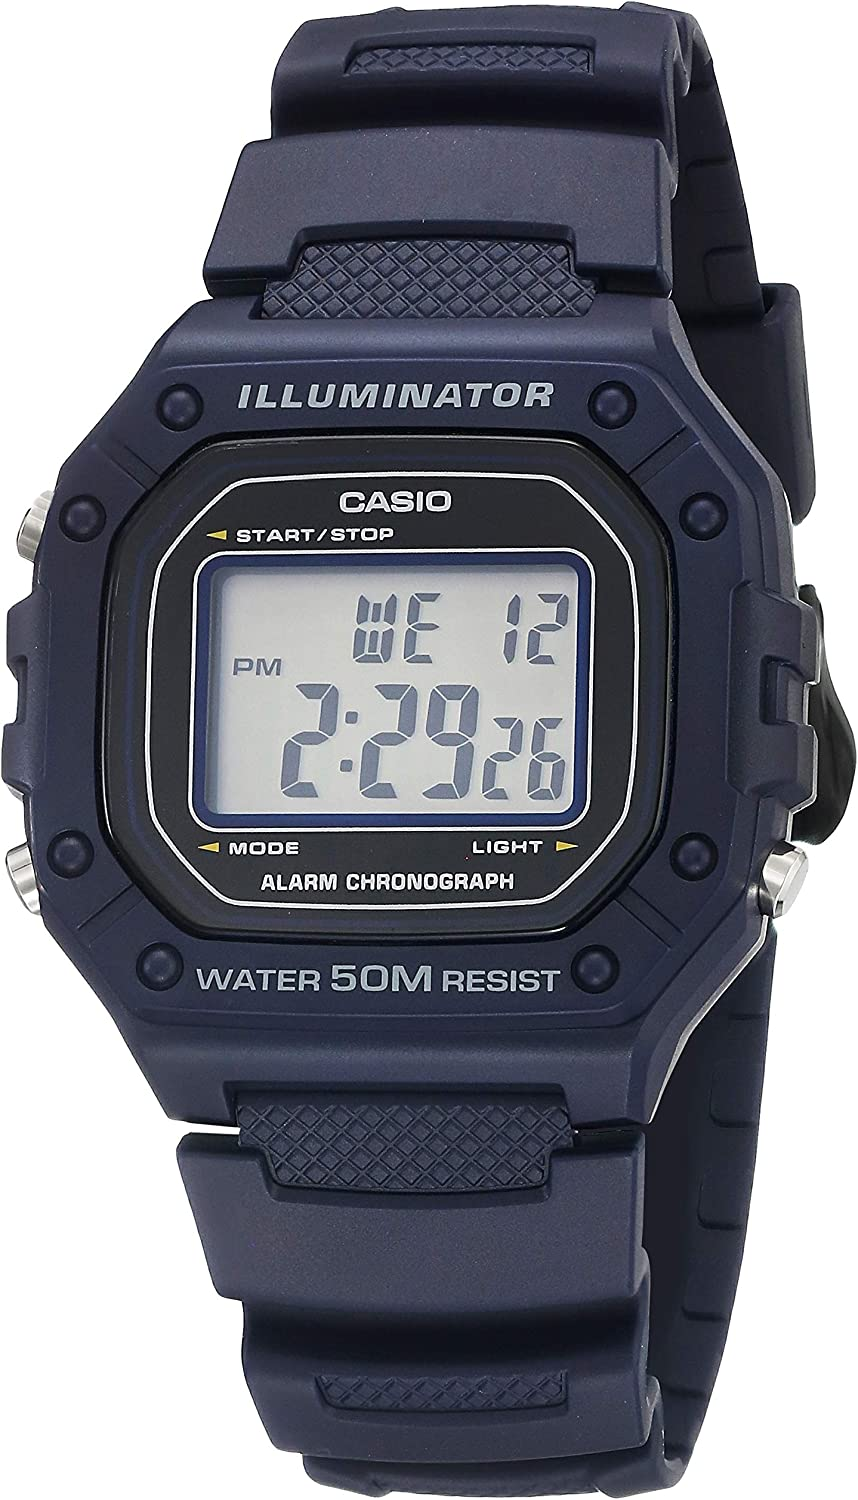 Casio Men's Classic Stainless Steel Quartz Watch with Resin Strap, Blue, 21.1 (Model: W-218H-2AVCF